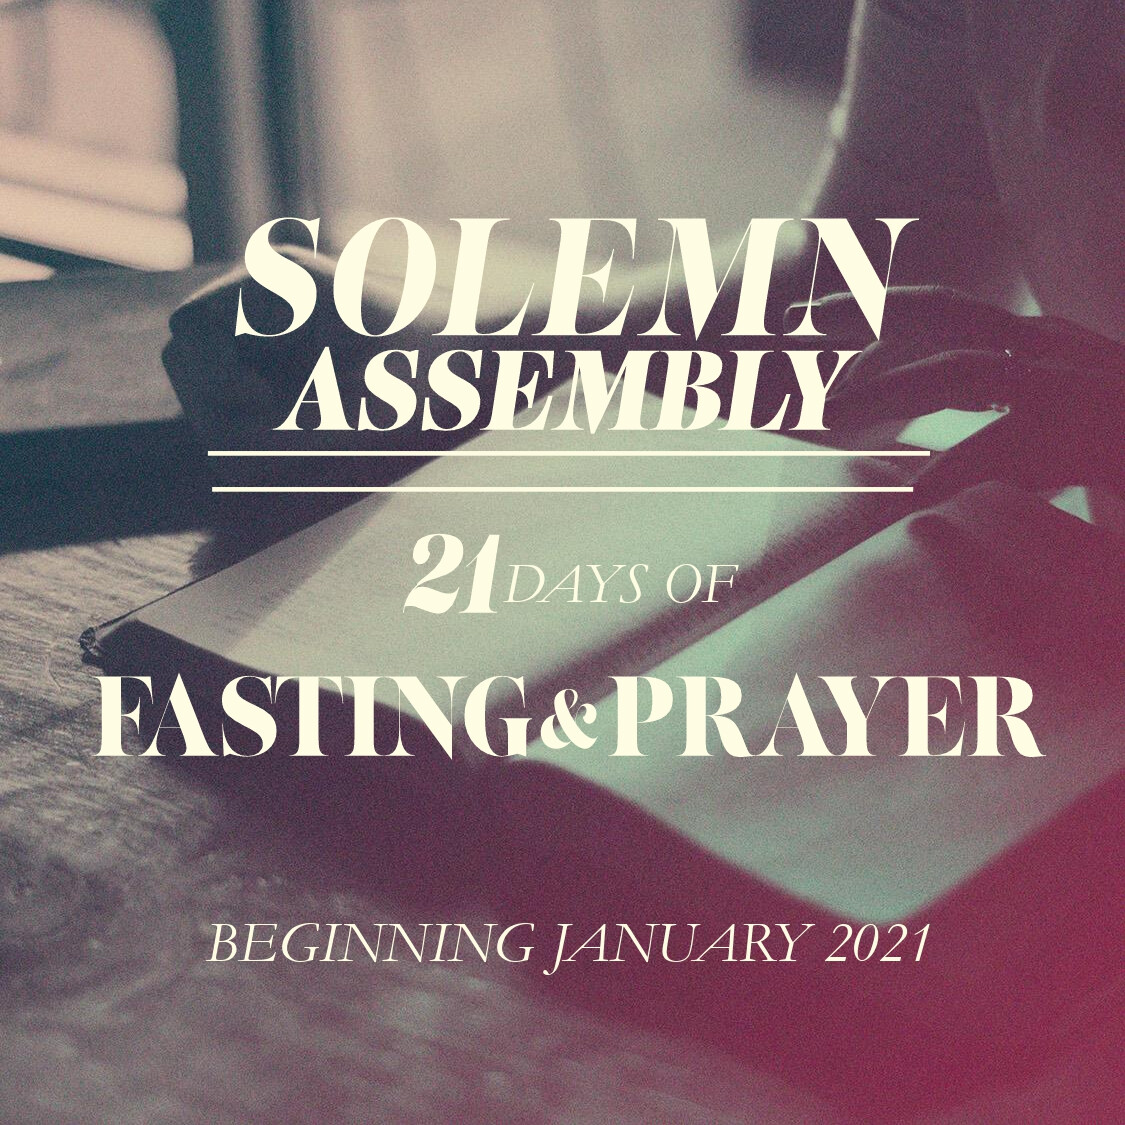 Solemn Assembly Fasting & Prayer